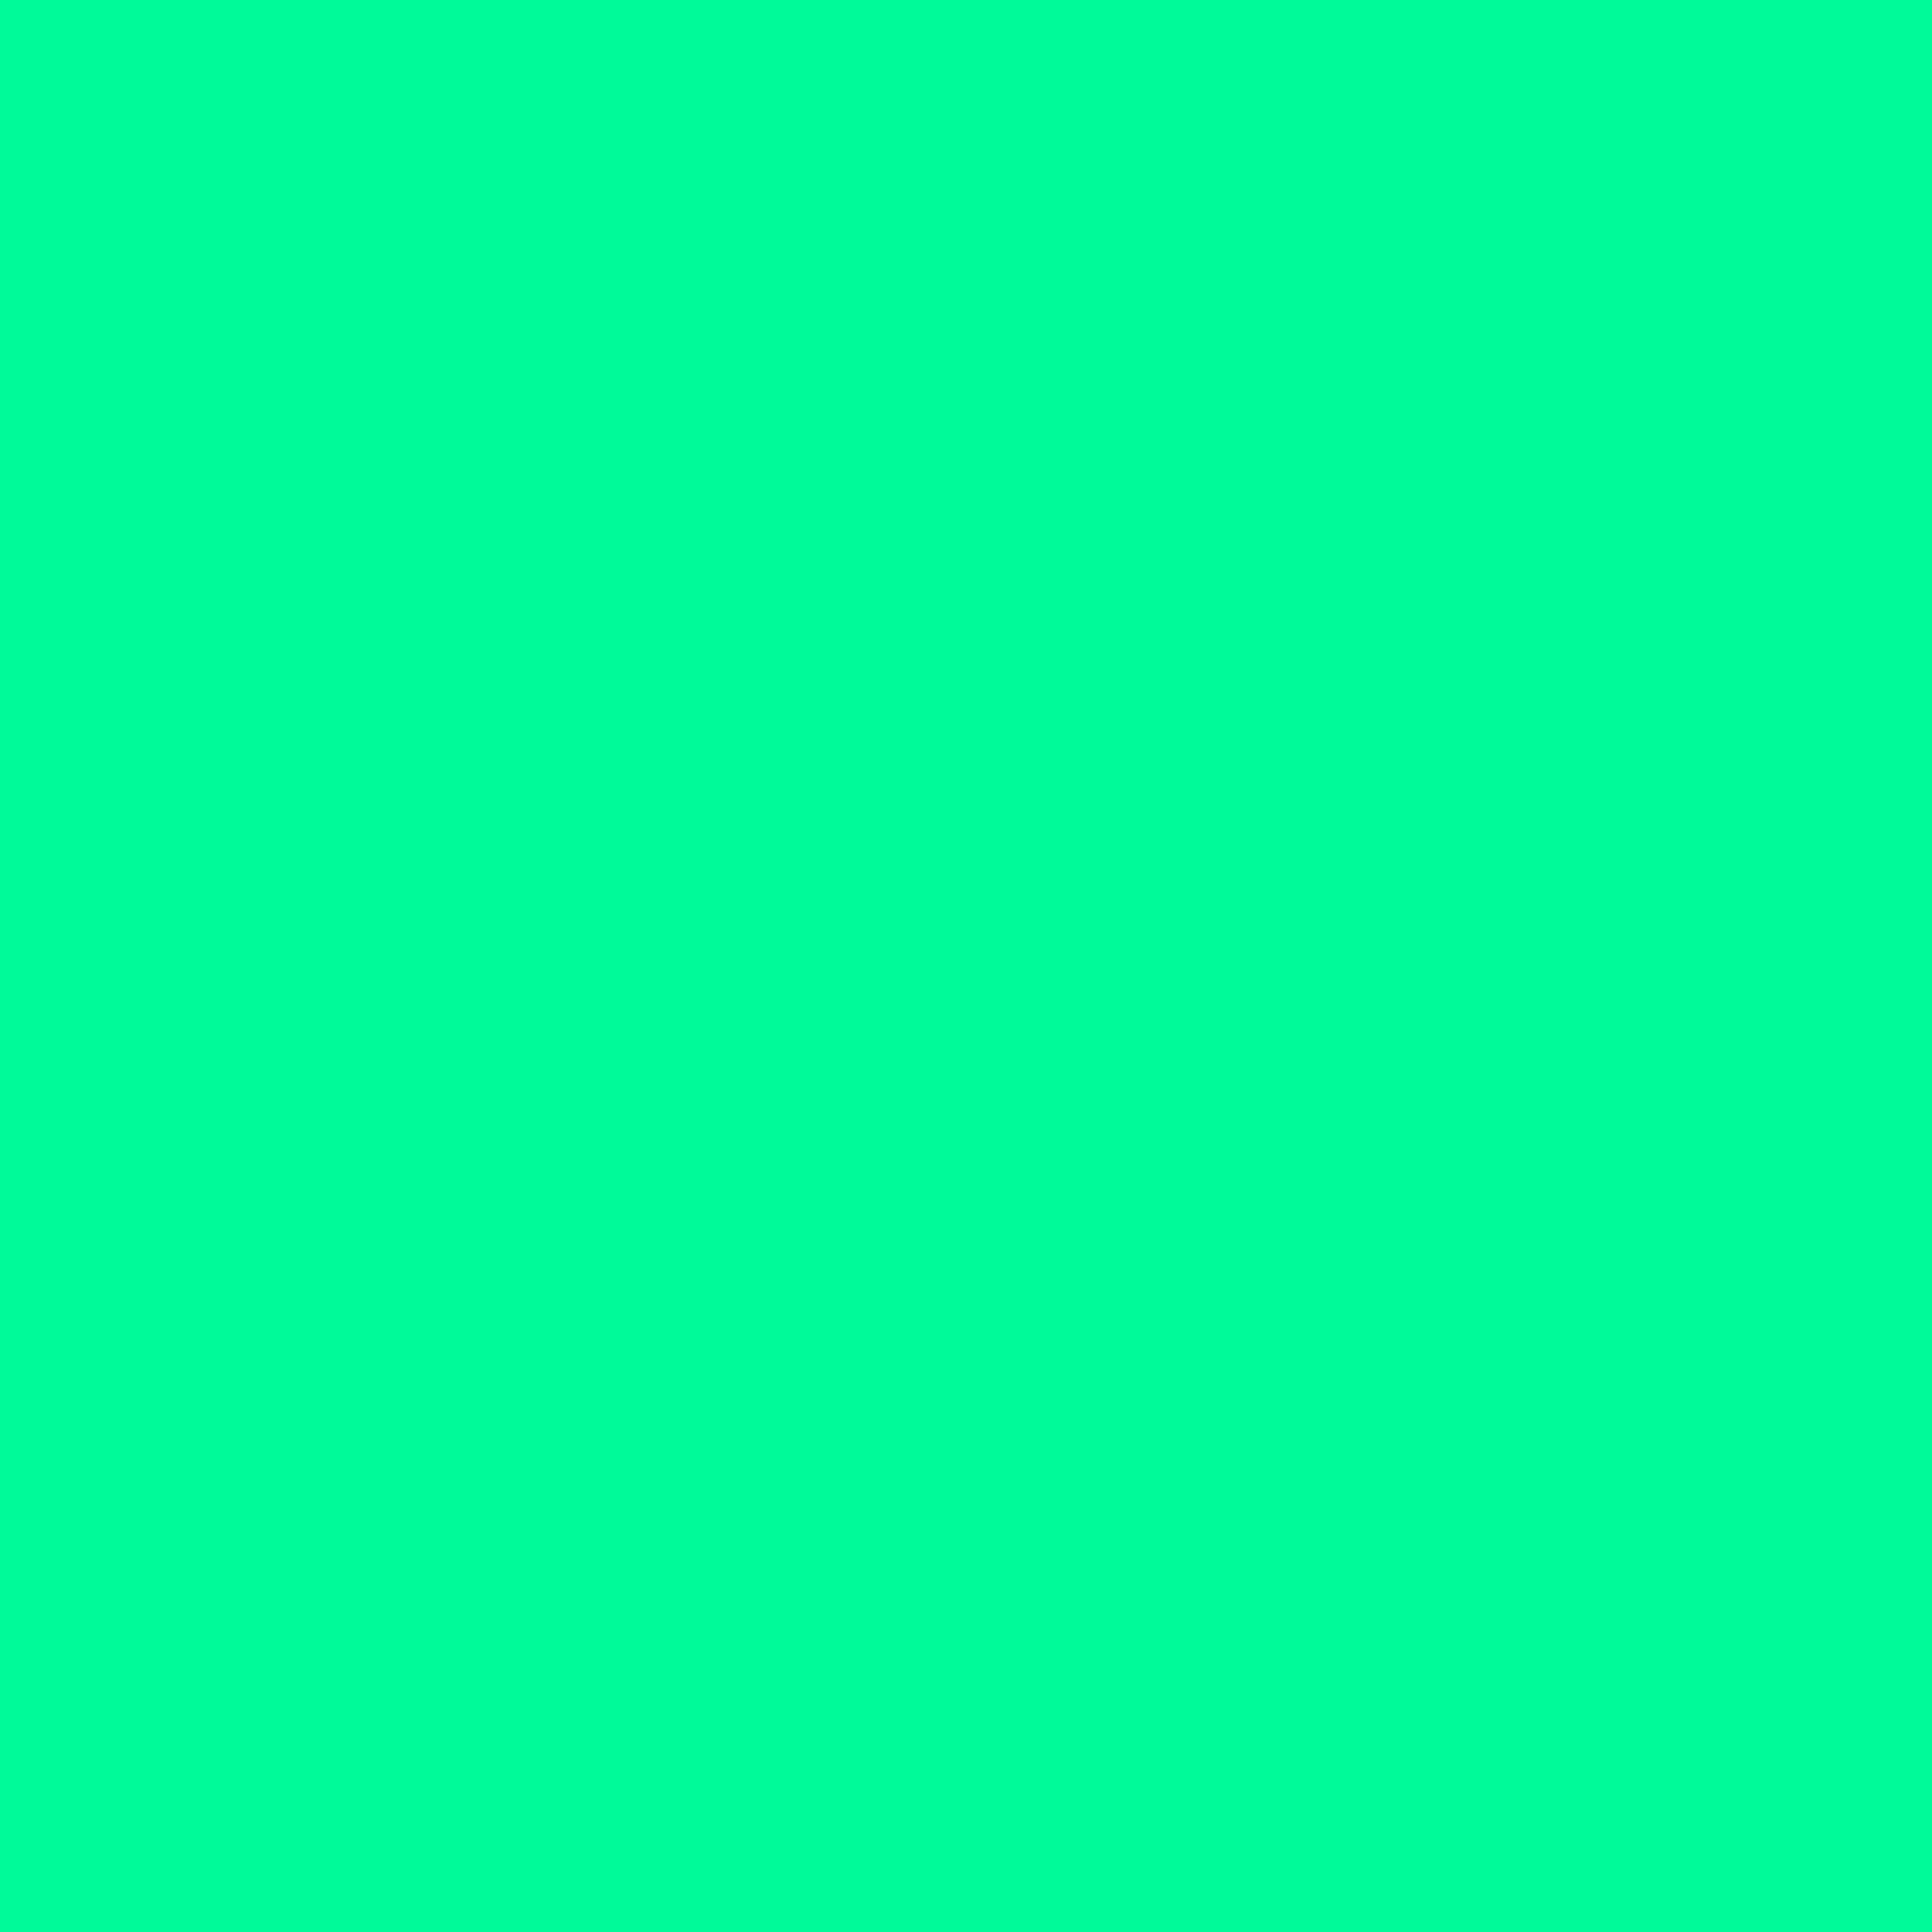 2048x2048 Medium Spring Green Solid Color Background